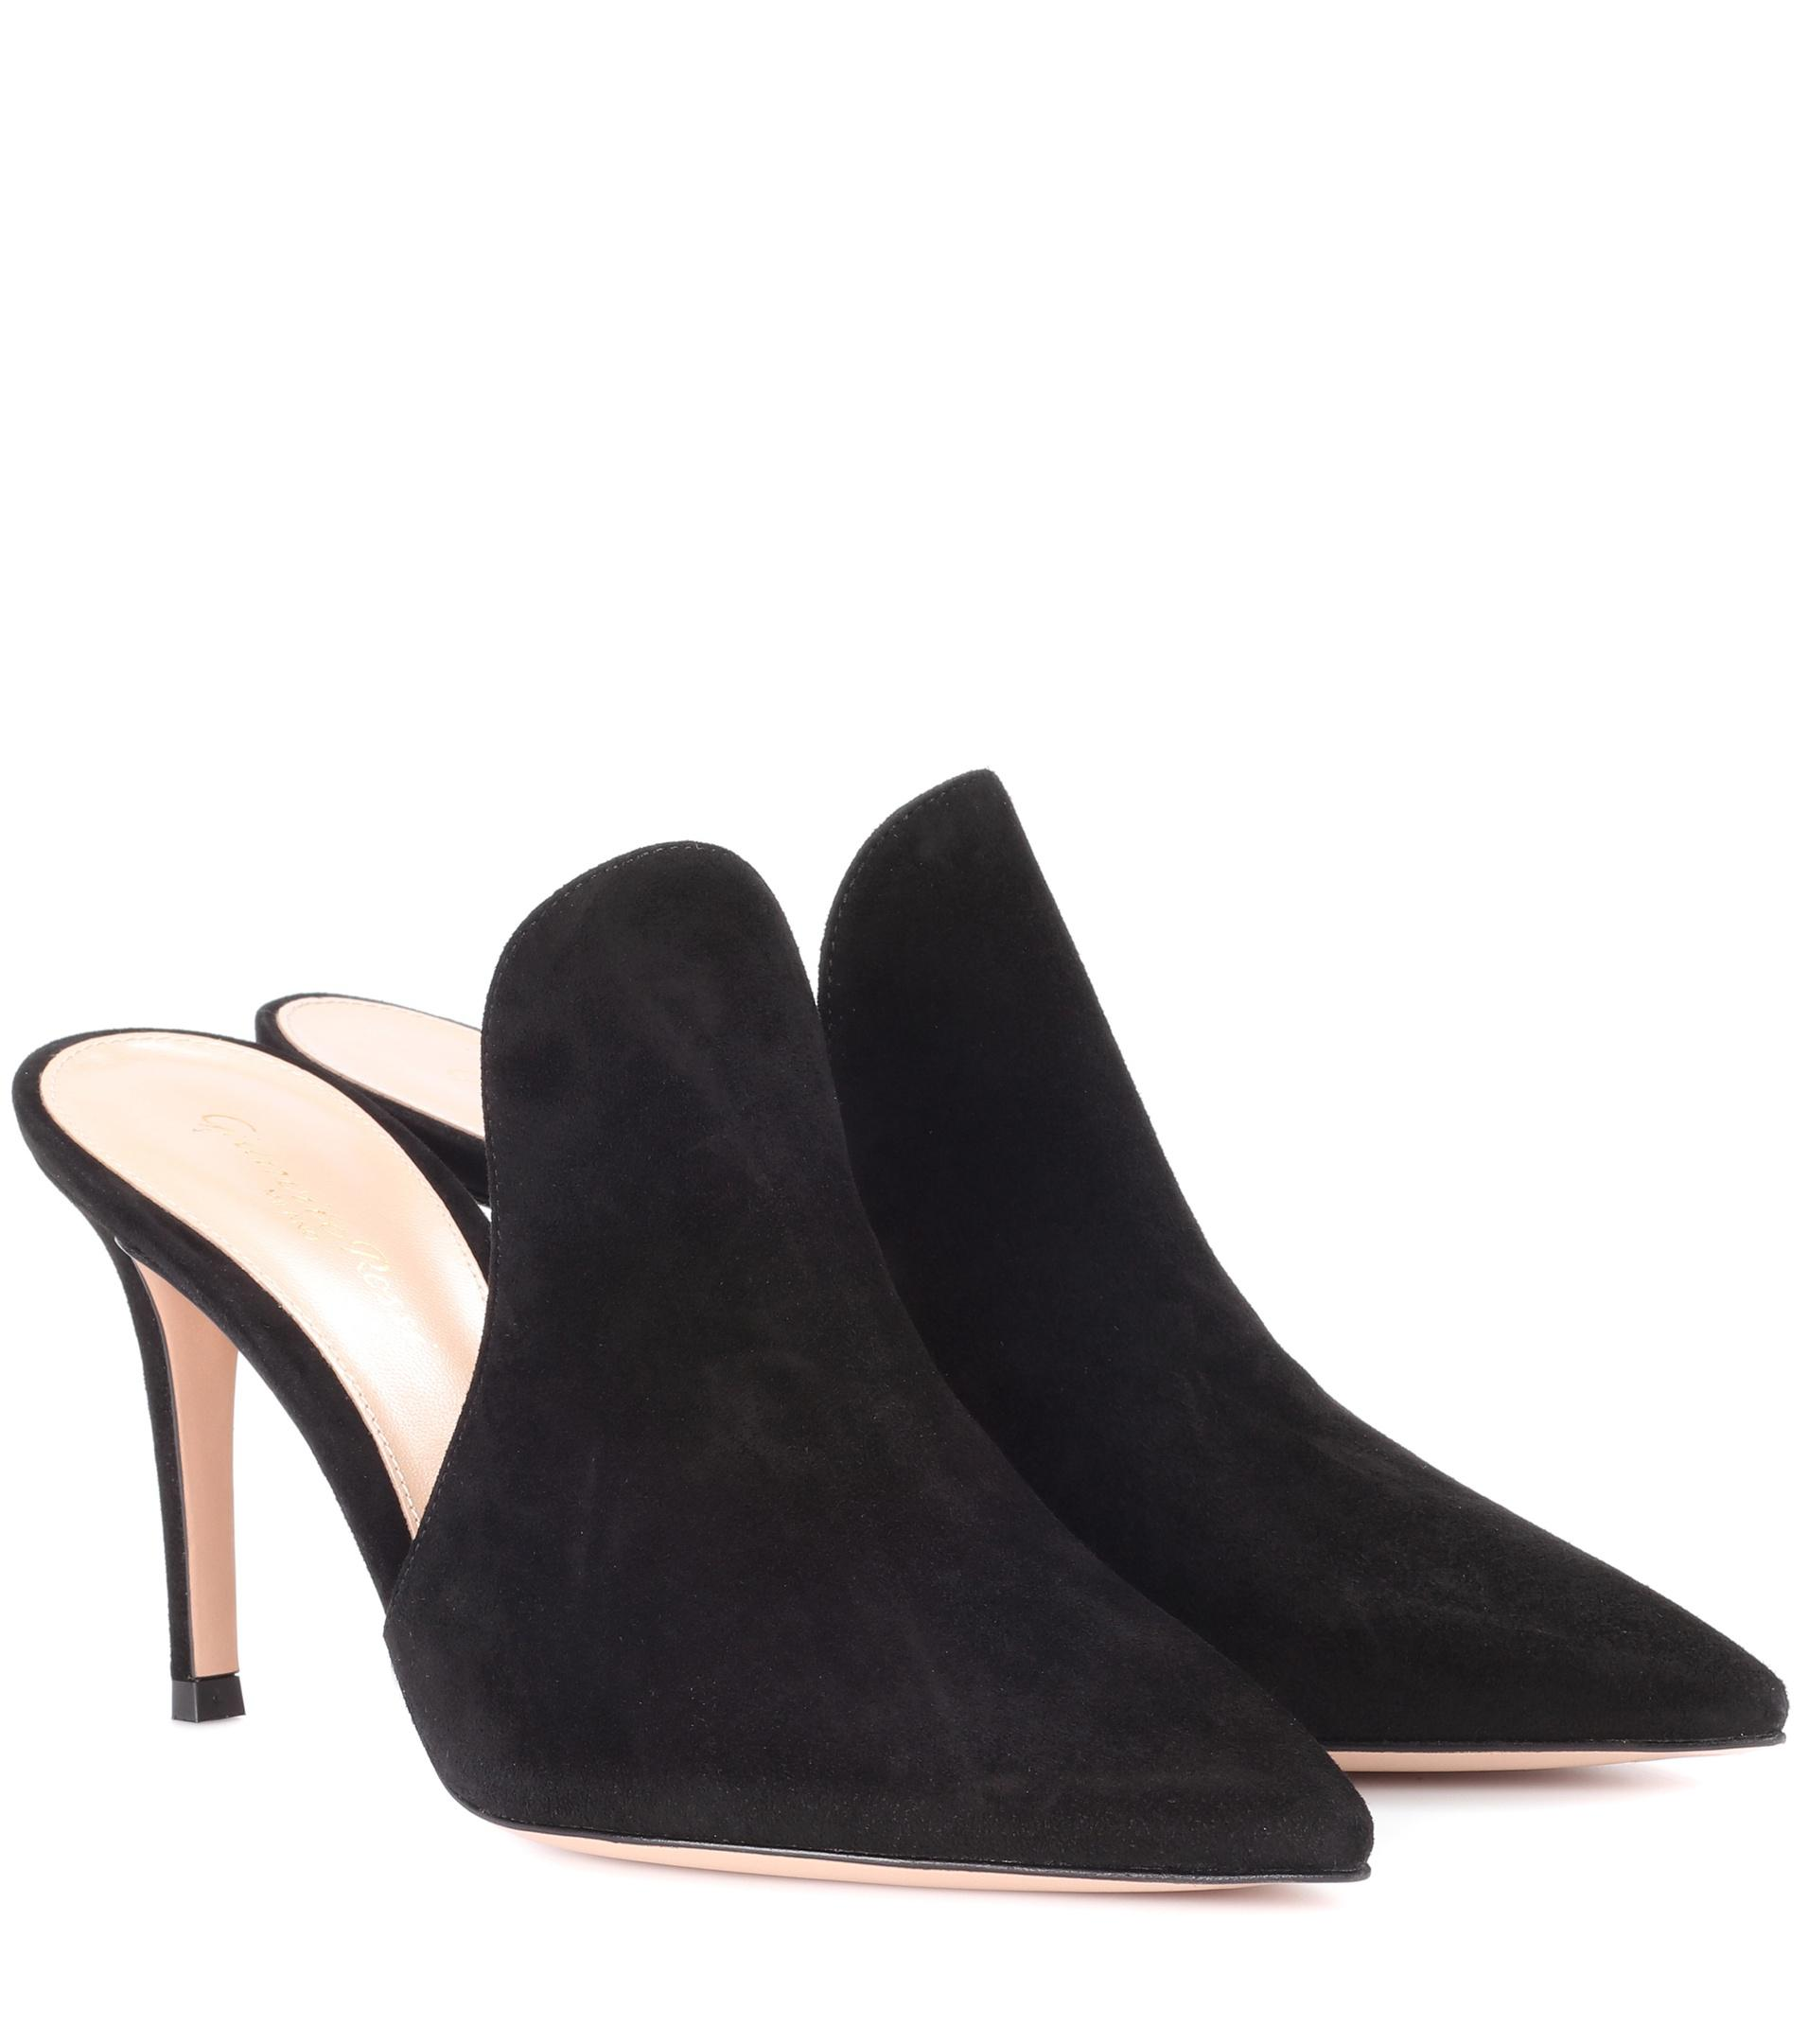 Gianvito Rossi Paige suede mules KLYM3a